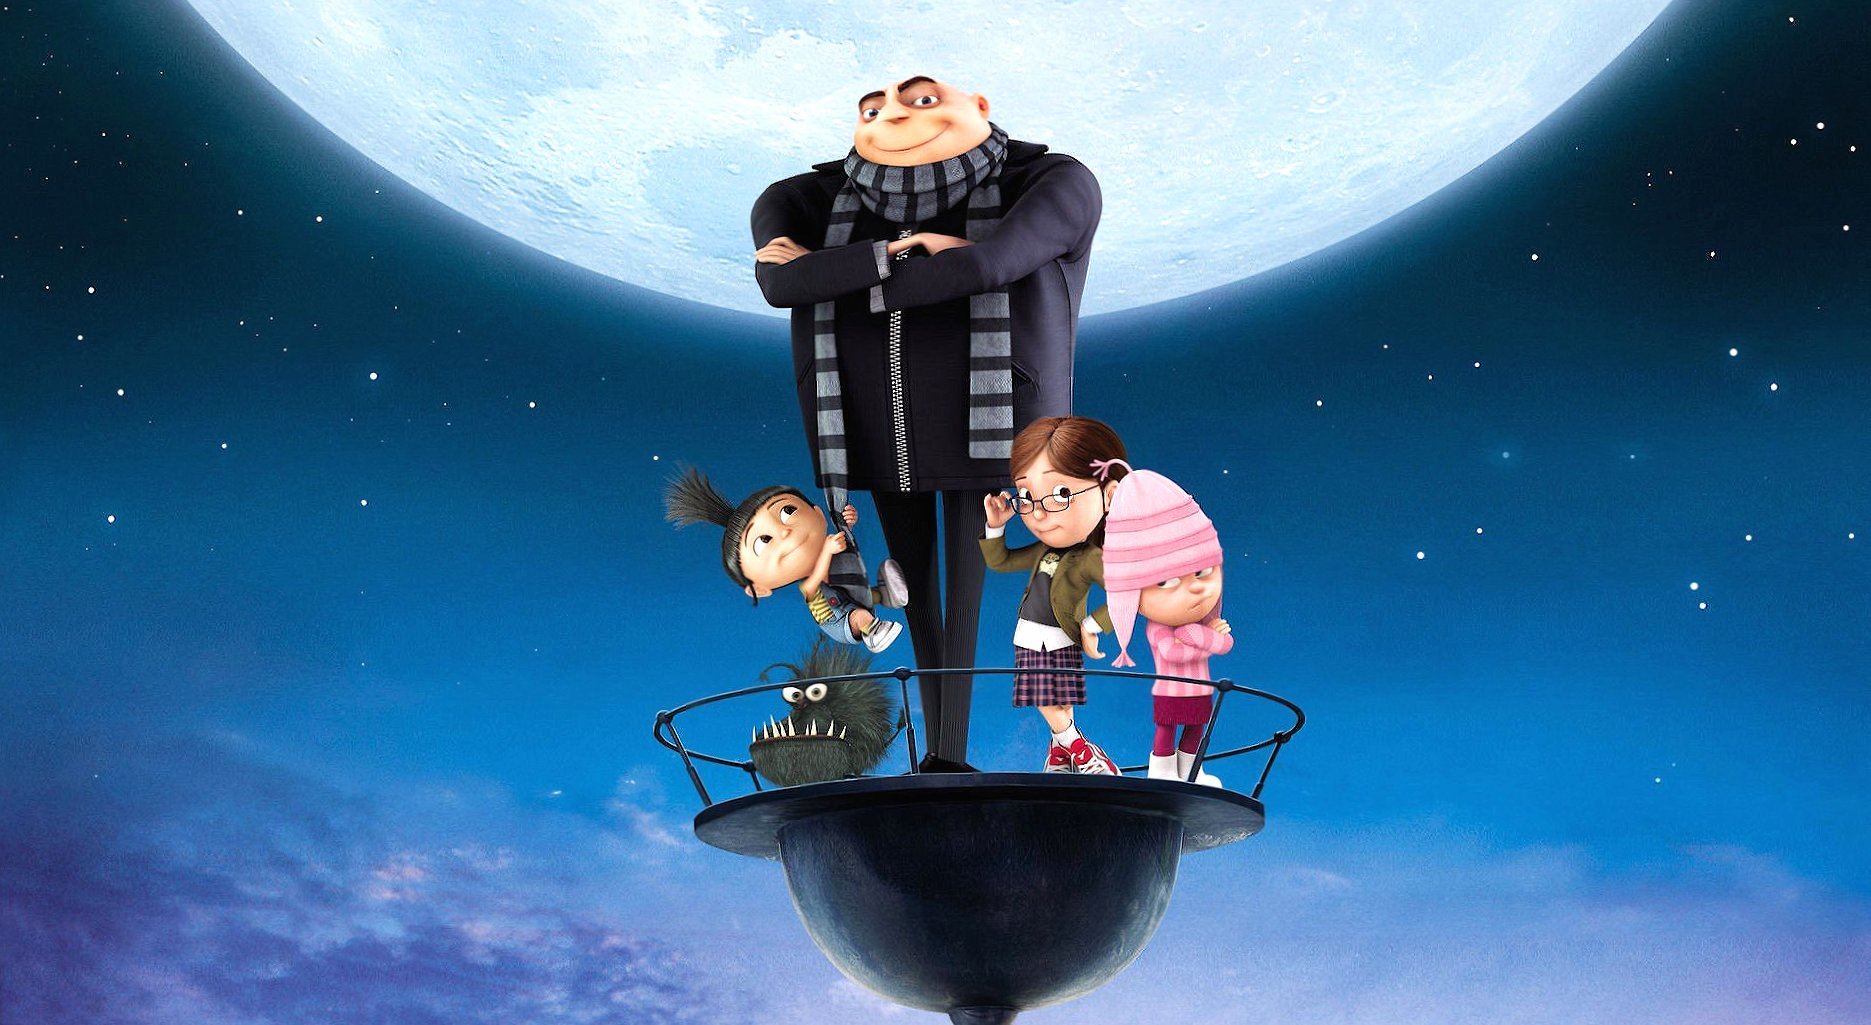 Despicable me gru and babies wallpapers HD quality